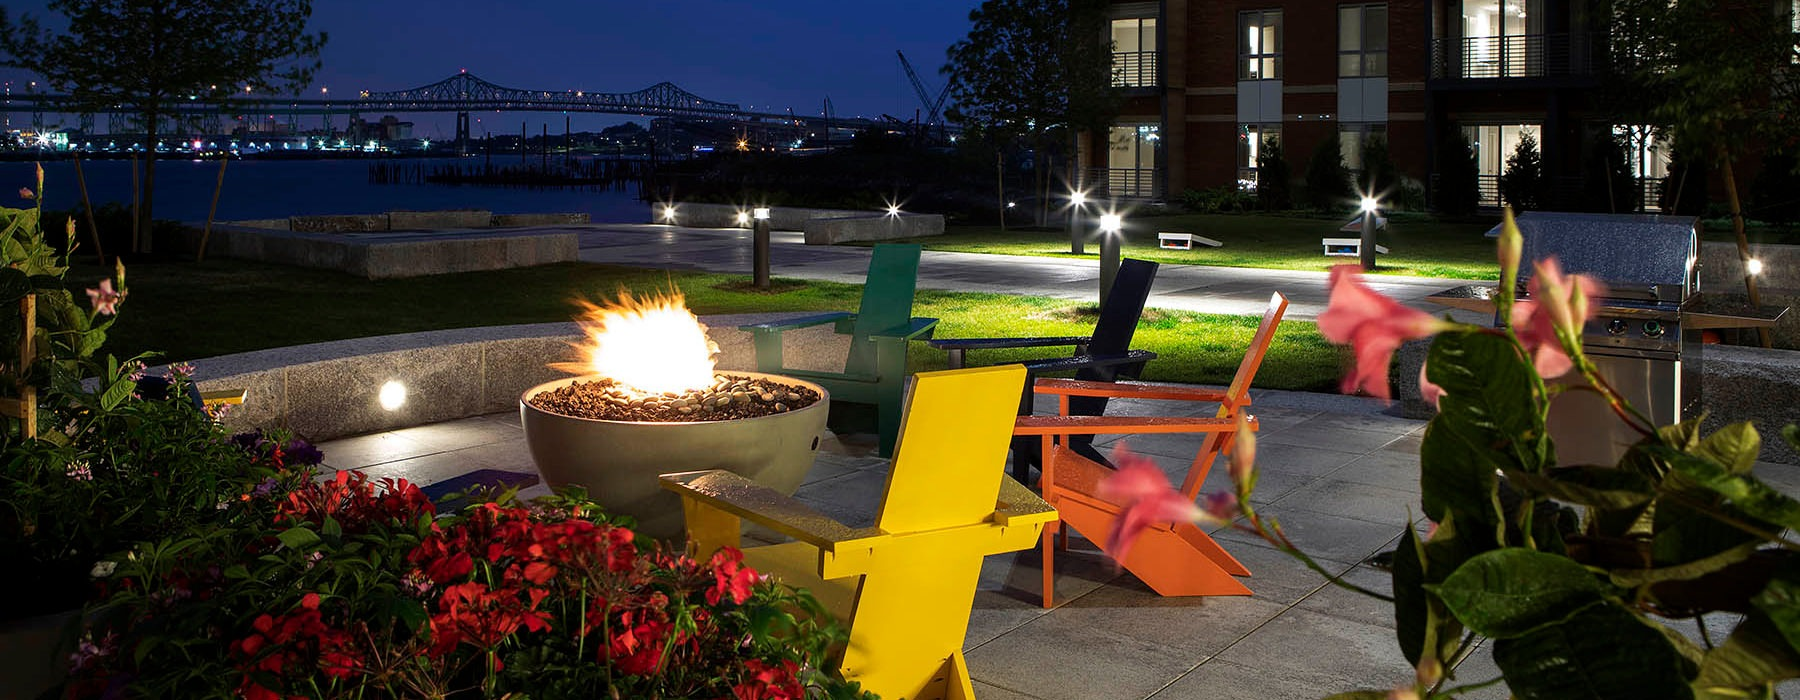 fire pit with lawn chairs at night with views of the harbor